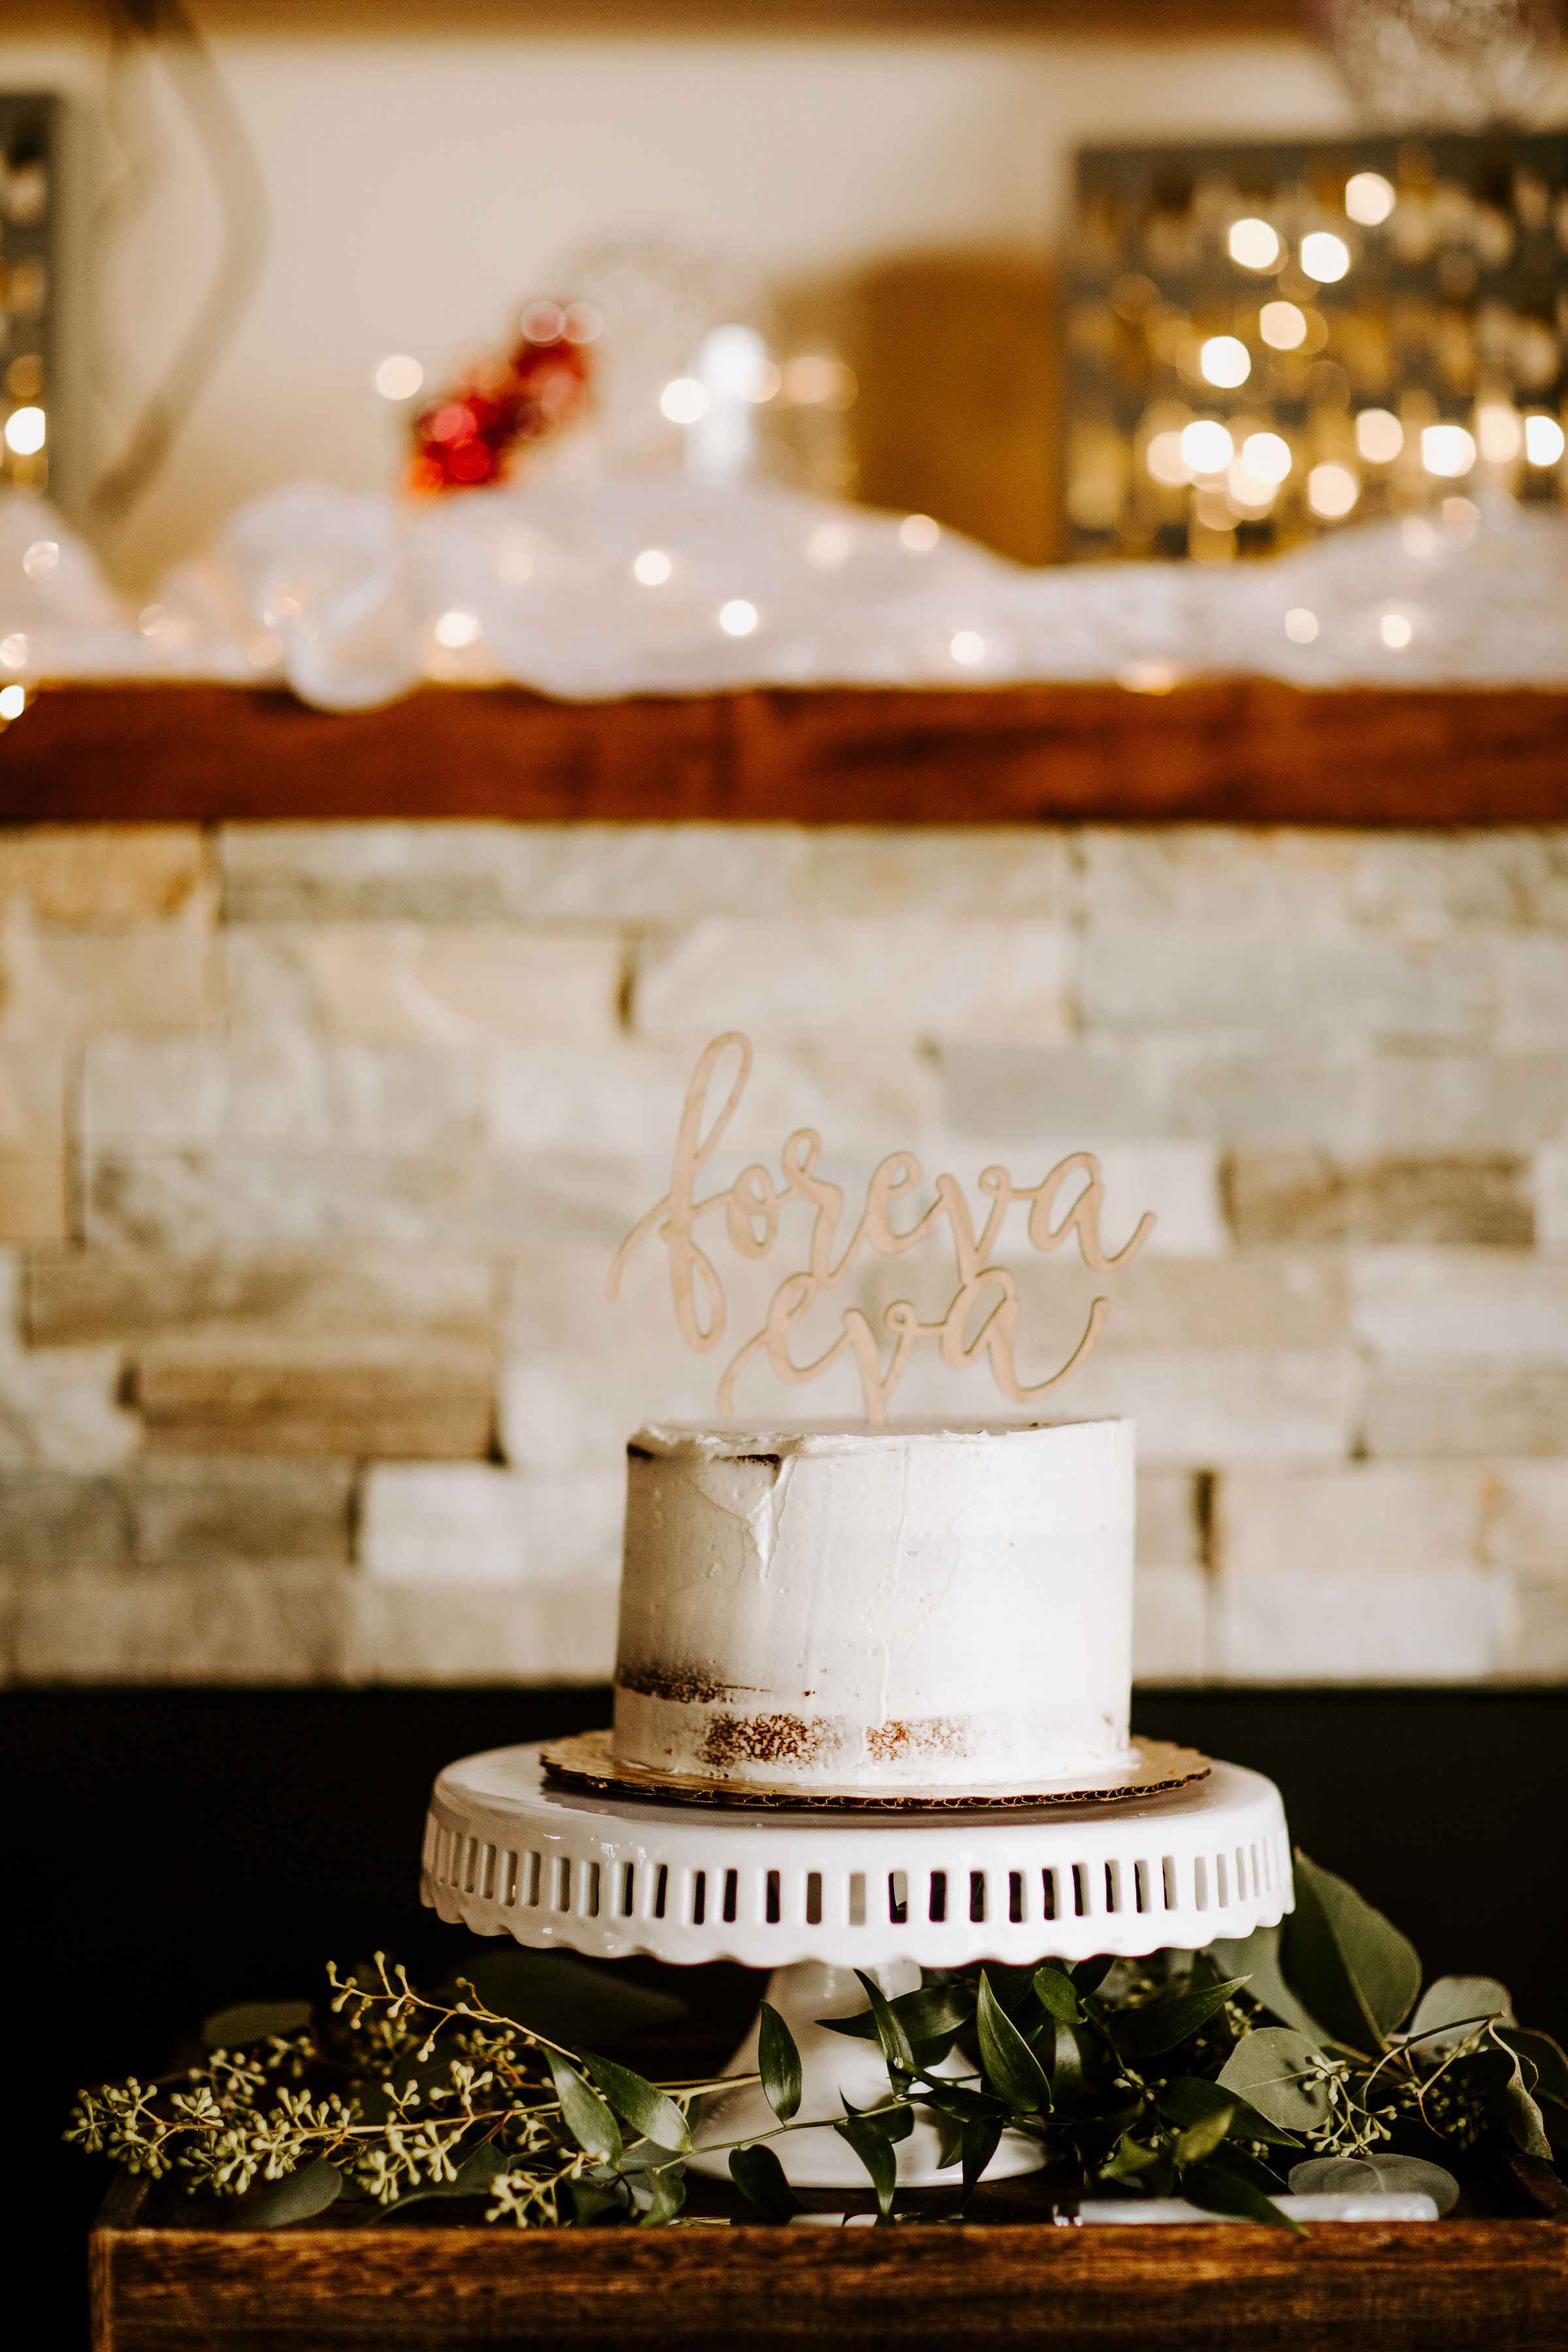 Winehaven-Winery-Wedding-Reception-Cake-Minneapolis-MN.jpg